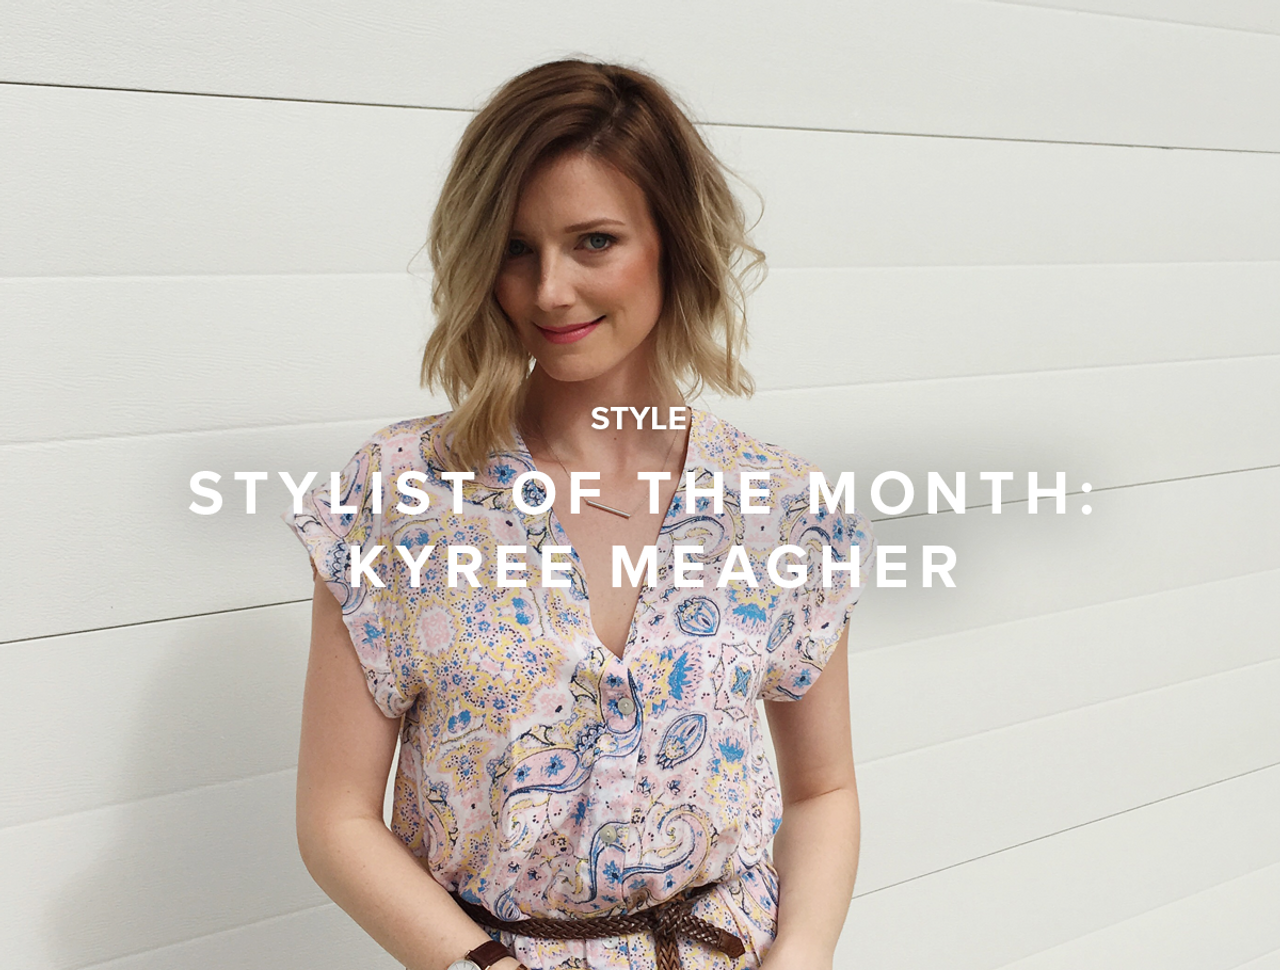 Mocka Stylist of the Month: Kyree Meagher